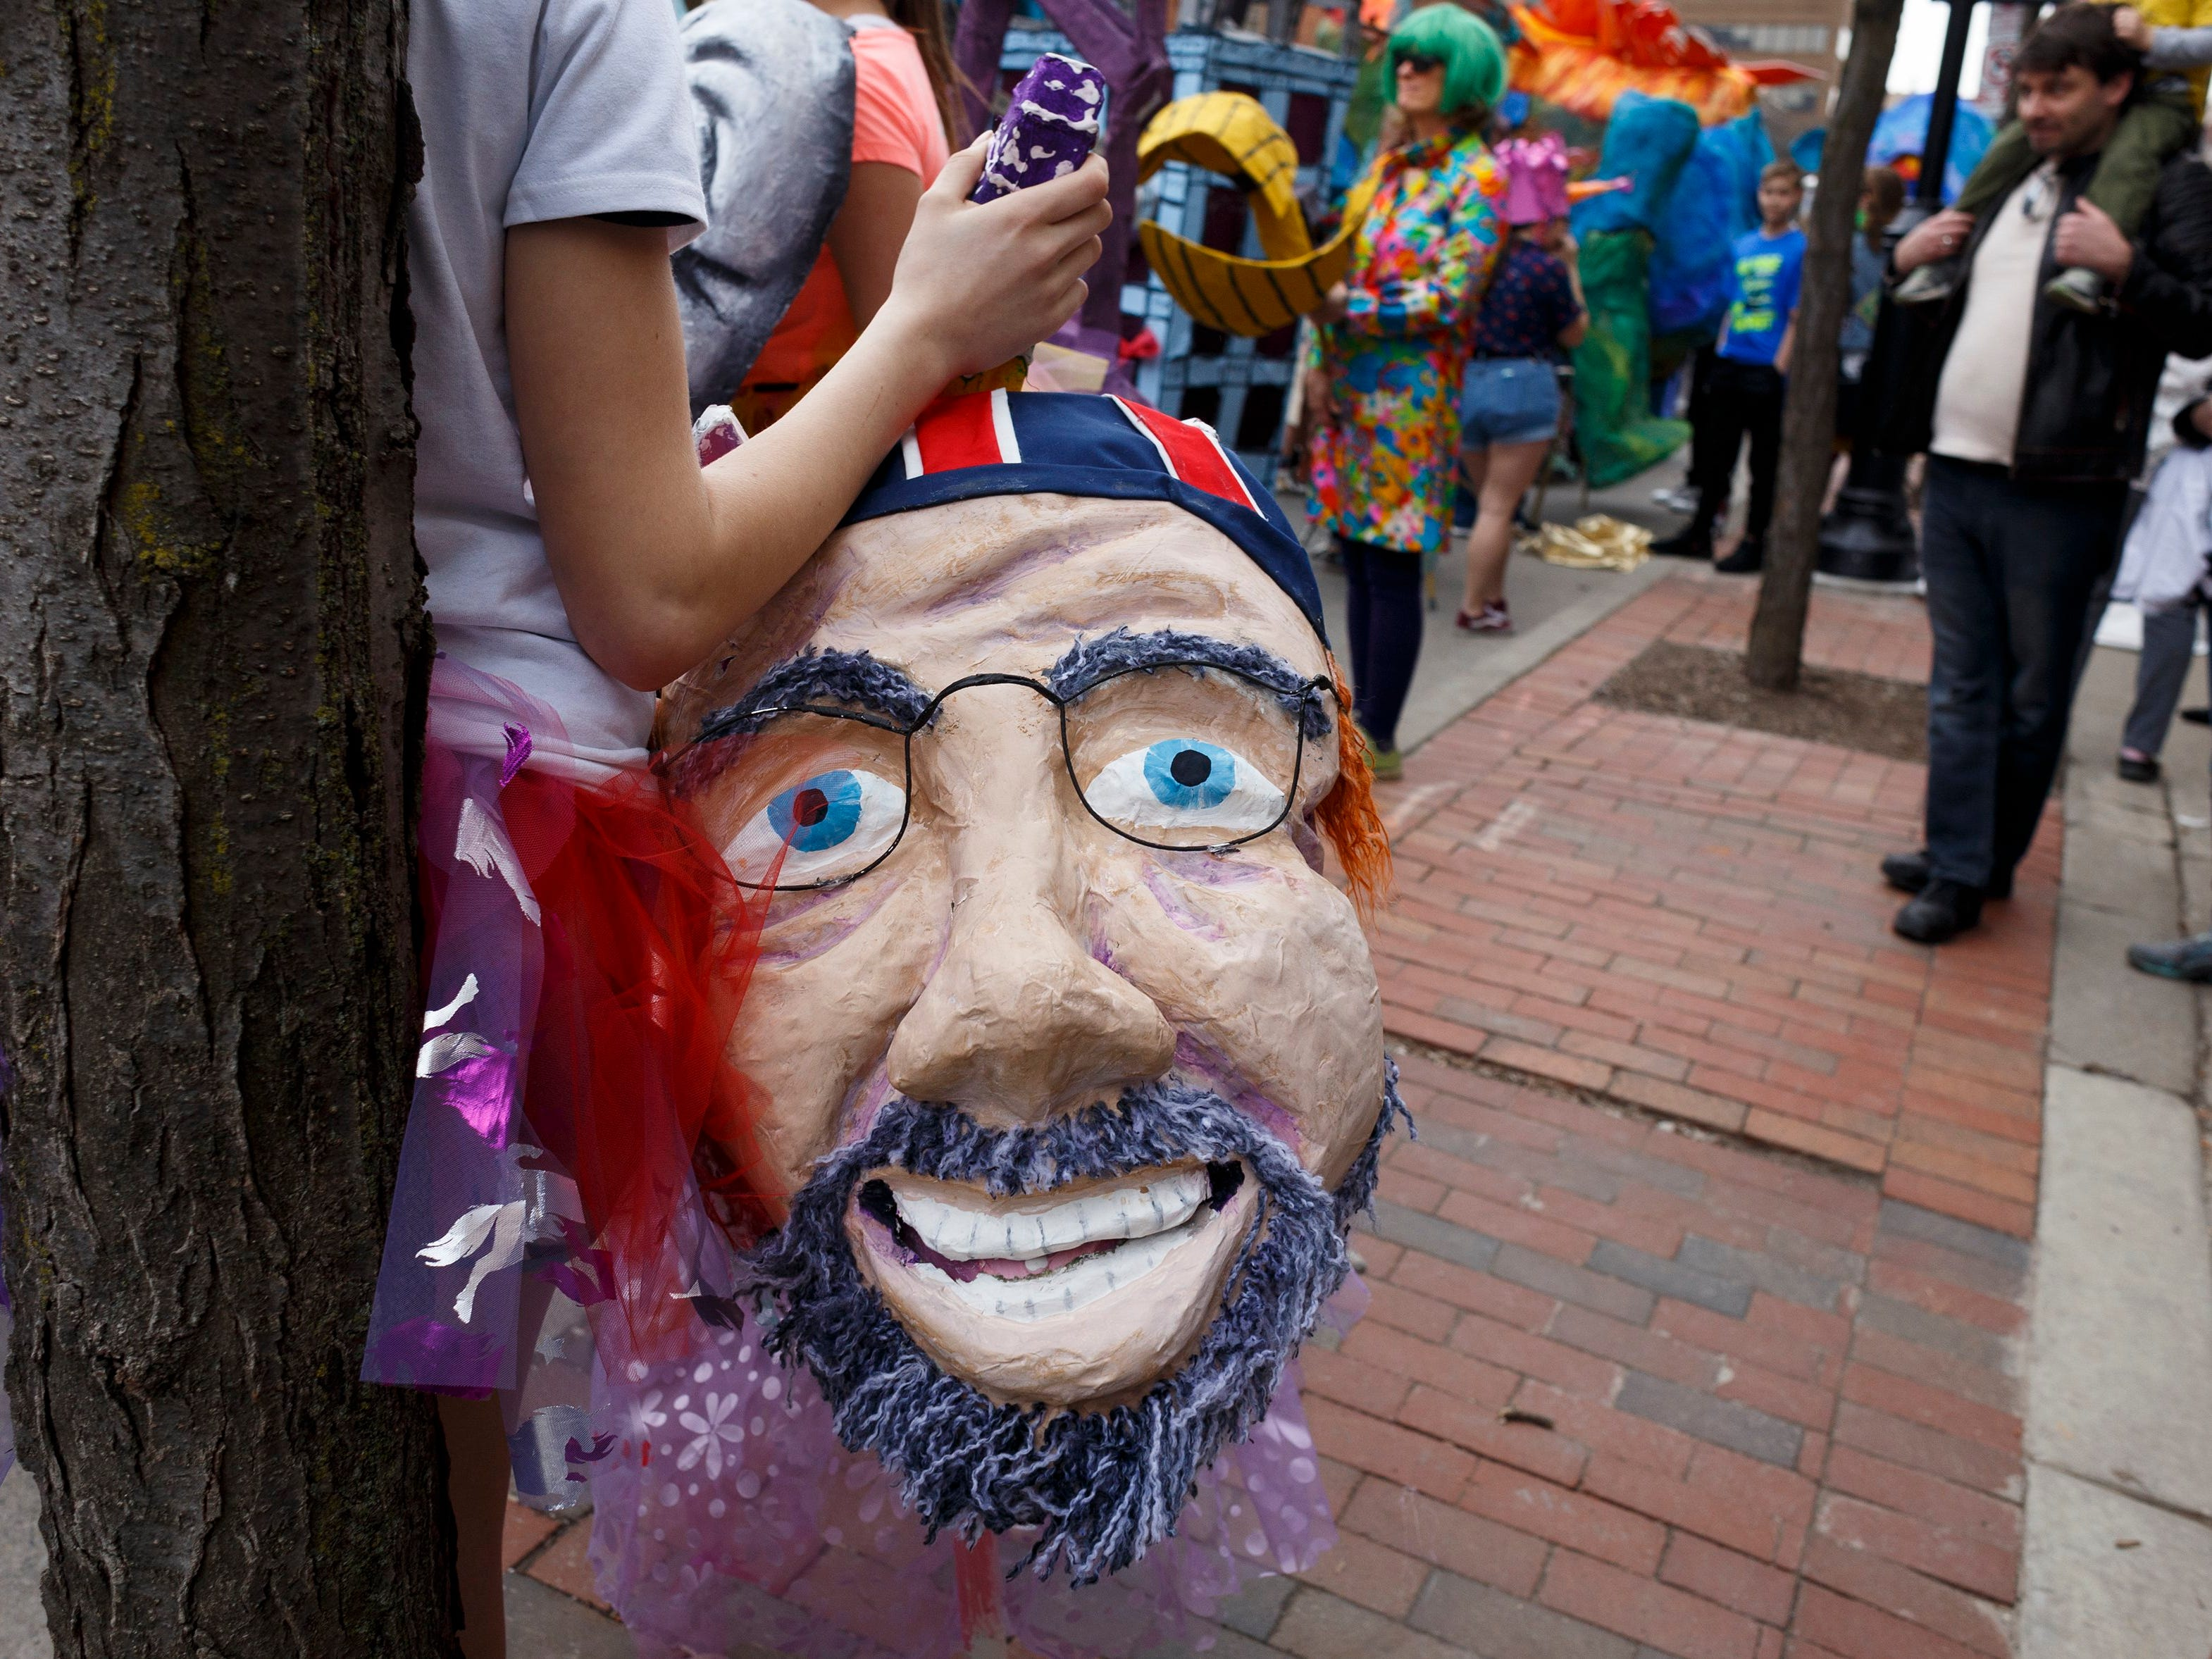 Mikala Sposito, 14, of Dexter holds the head of her puppet before the start of the annual FestiFools parade on Sunday, April 7, 2019 on South Main Street in downtown Ann Arbor.